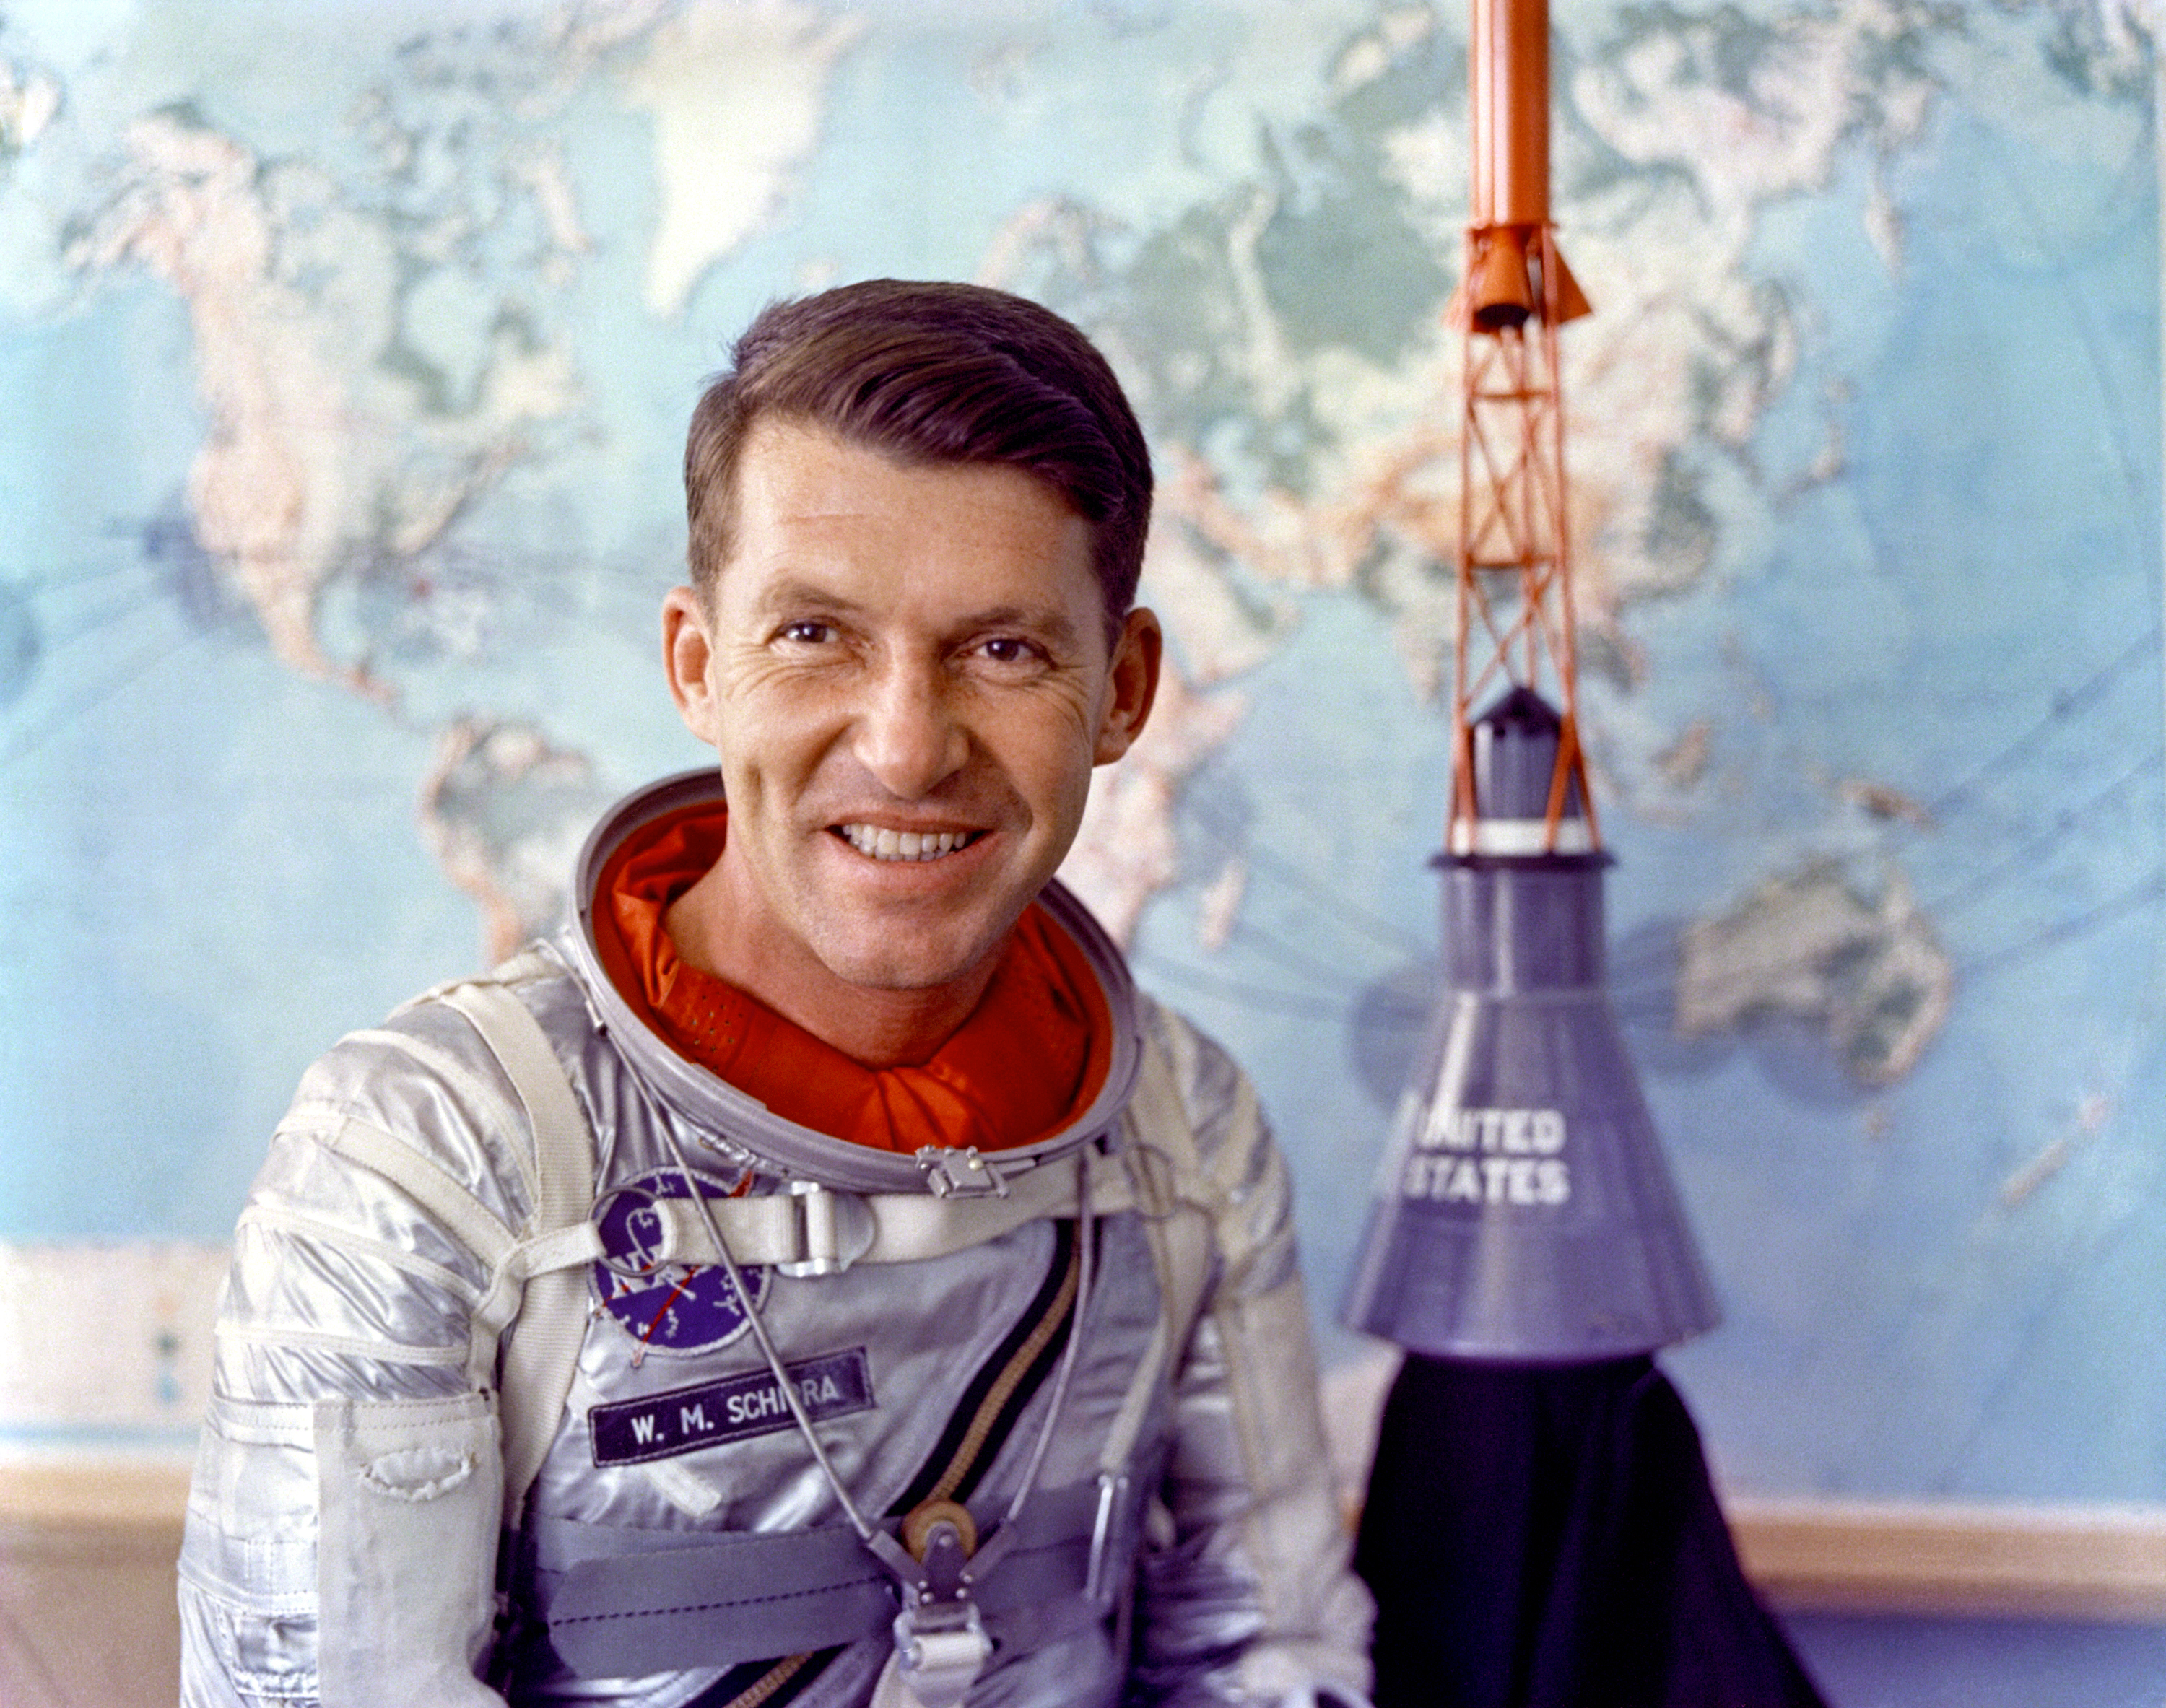 Image of Wally Schirra from Wikidata